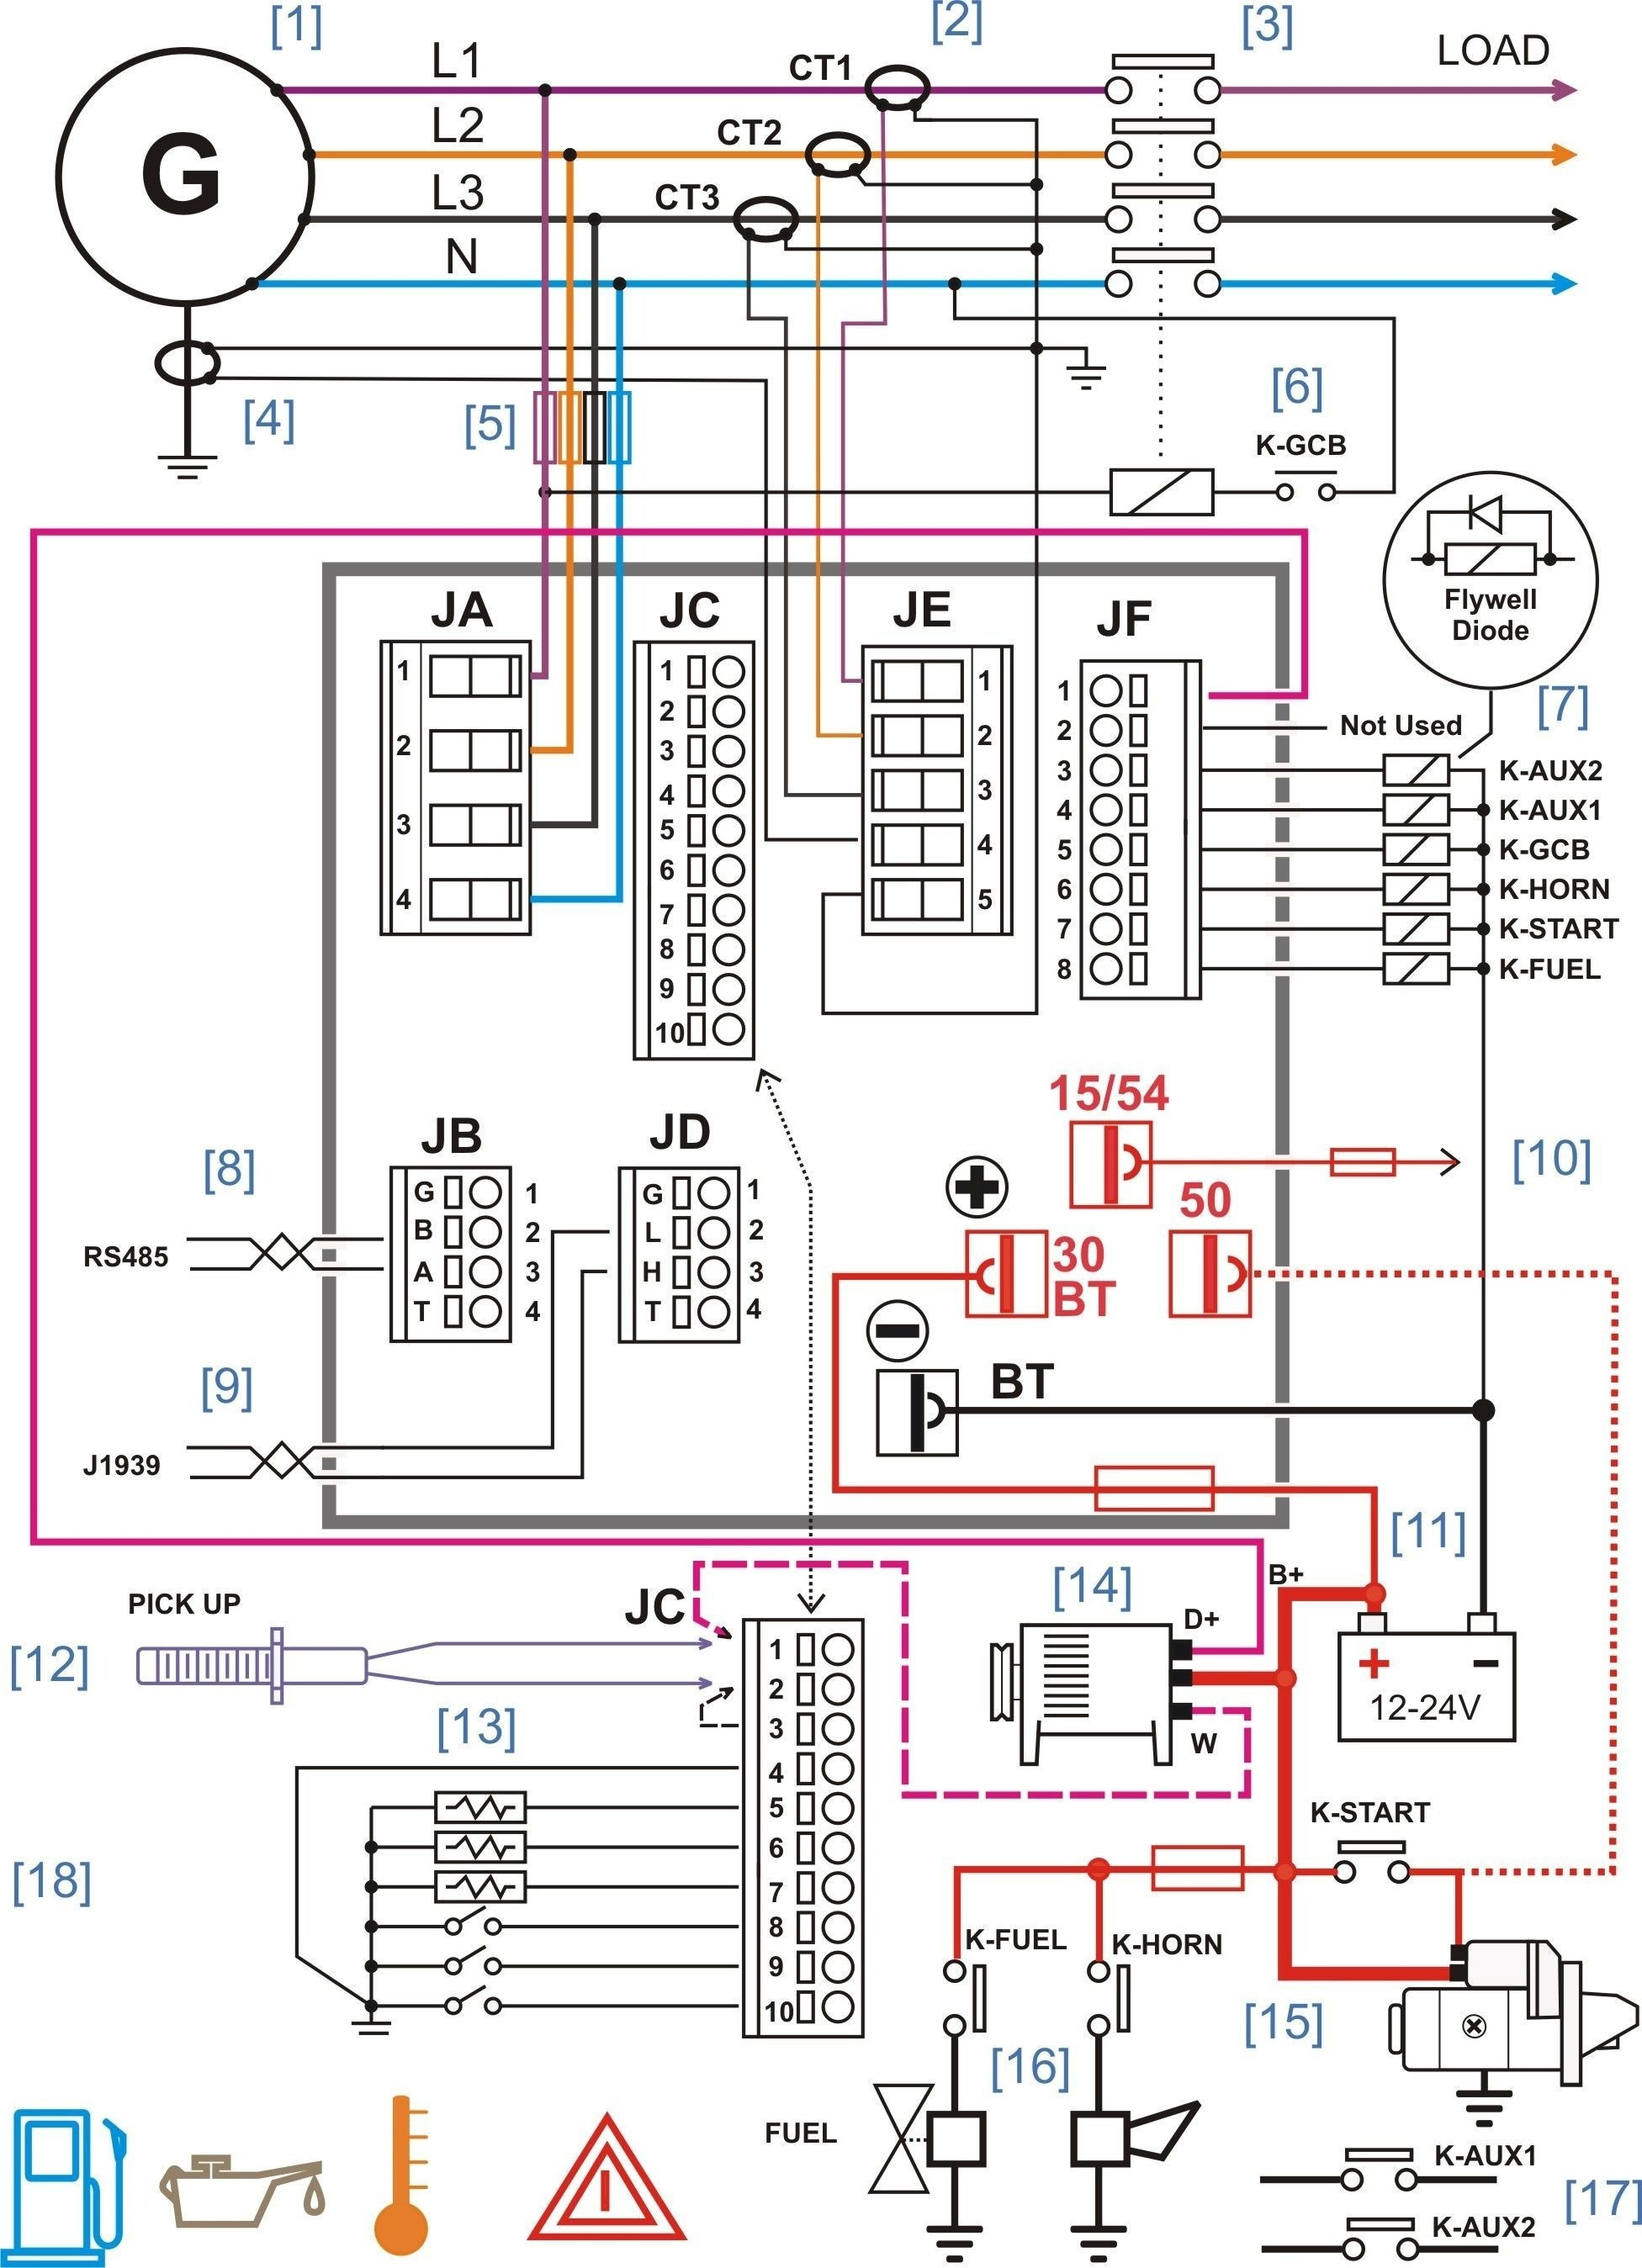 Stereo Wiring Diagram Boat - Trusted Wiring Diagram Online - Boat Stereo Wiring Diagram